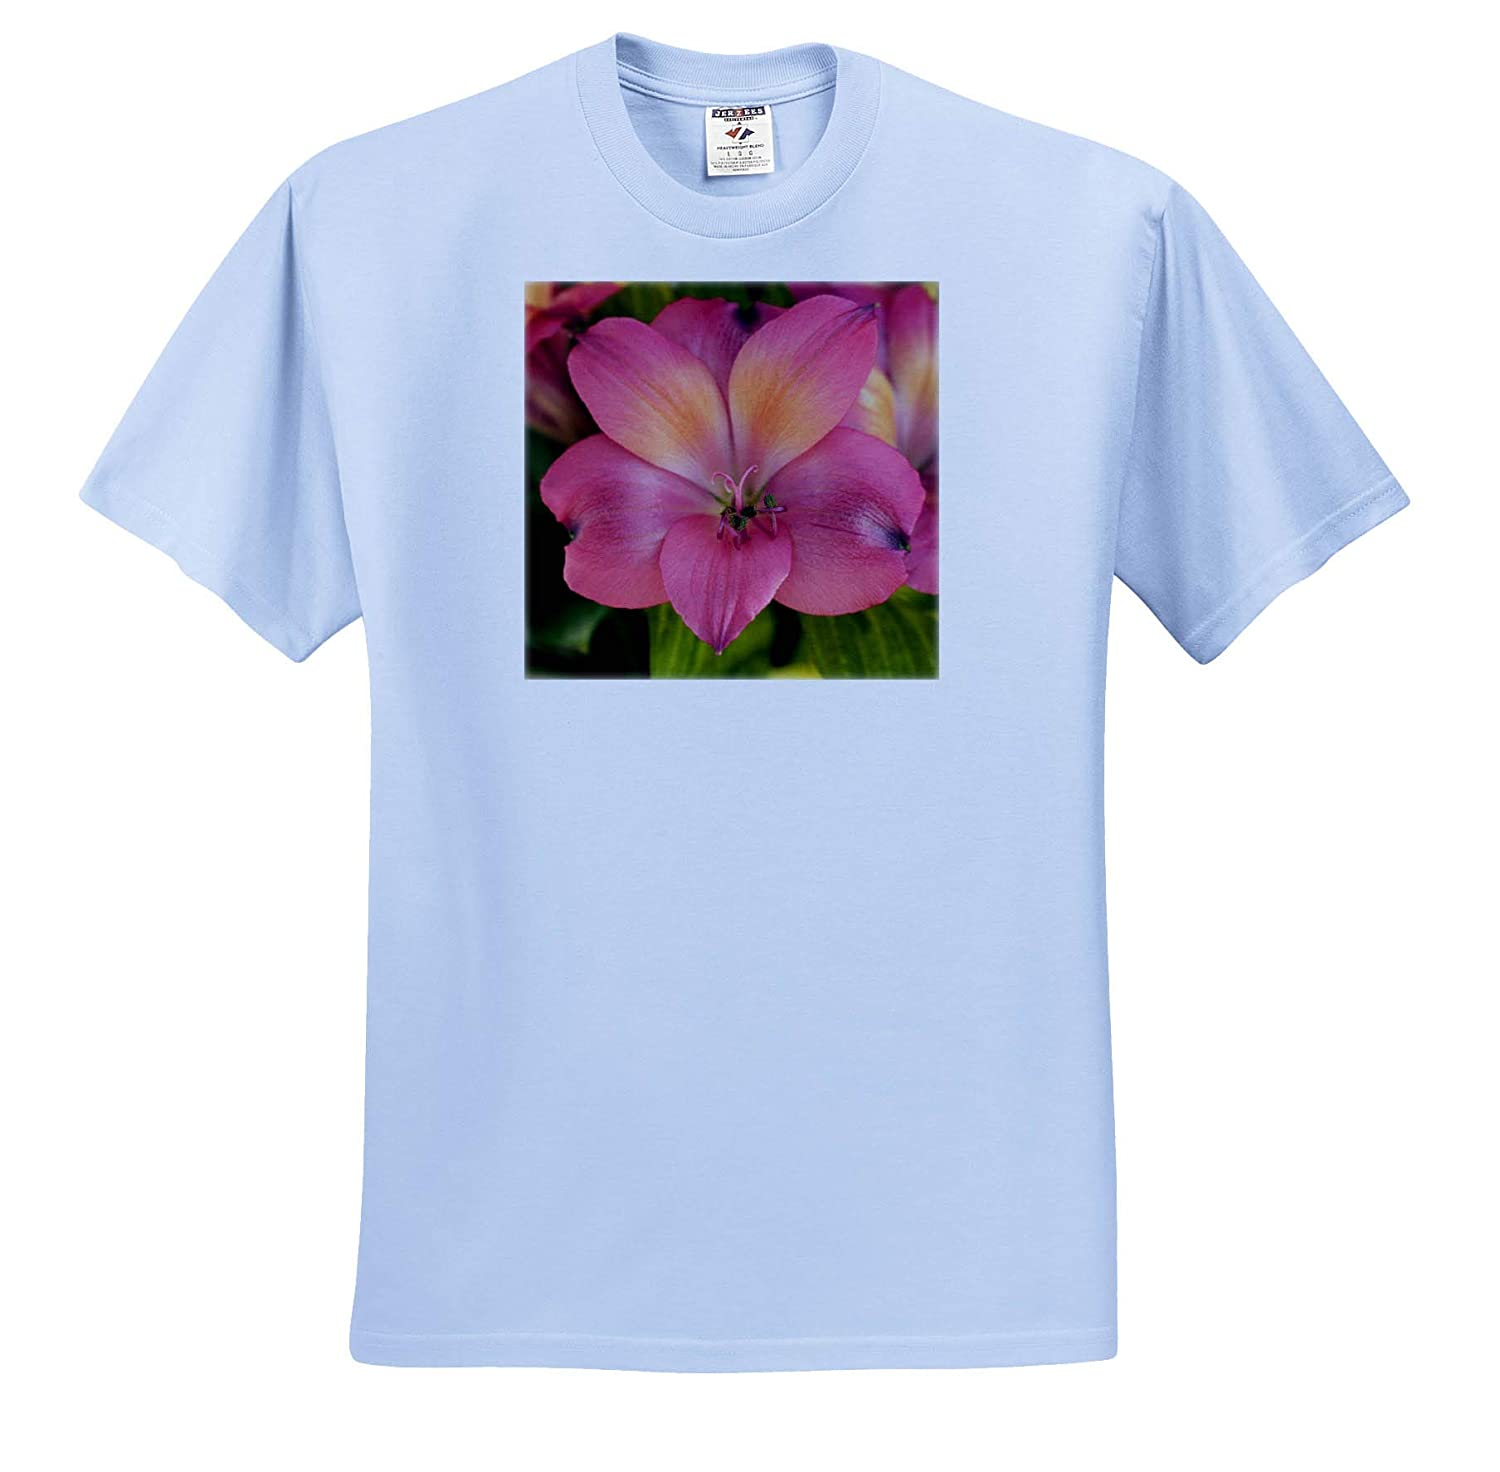 3dRose Stamp City Flowers Close up Photograph of a Beautiful Lily Flower in a Bouquet - T-Shirts